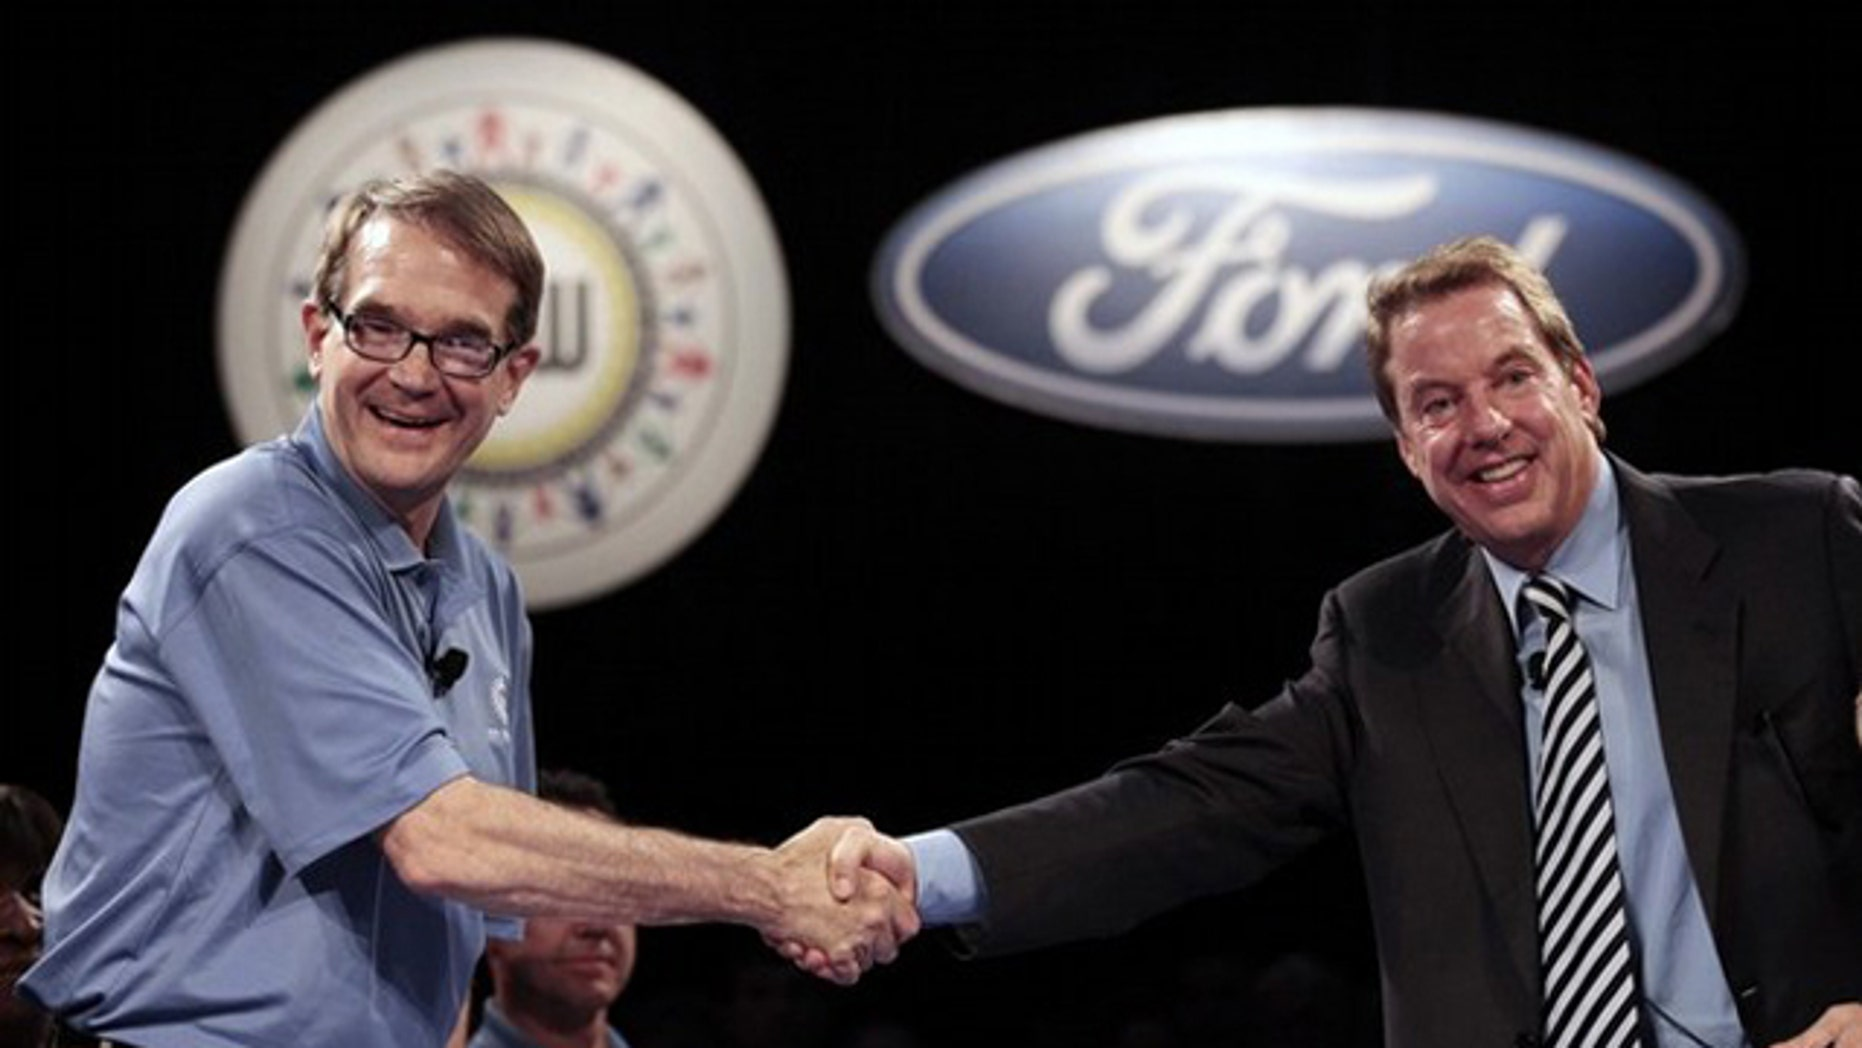 United Auto Workers Union President Bob King (L) and Ford Motor Co Executive Chairman Bill Ford shake hands to mark the beginning of labor contract negotiations at the Rouge Center in Dearborn, Michigan July 29, 2011.